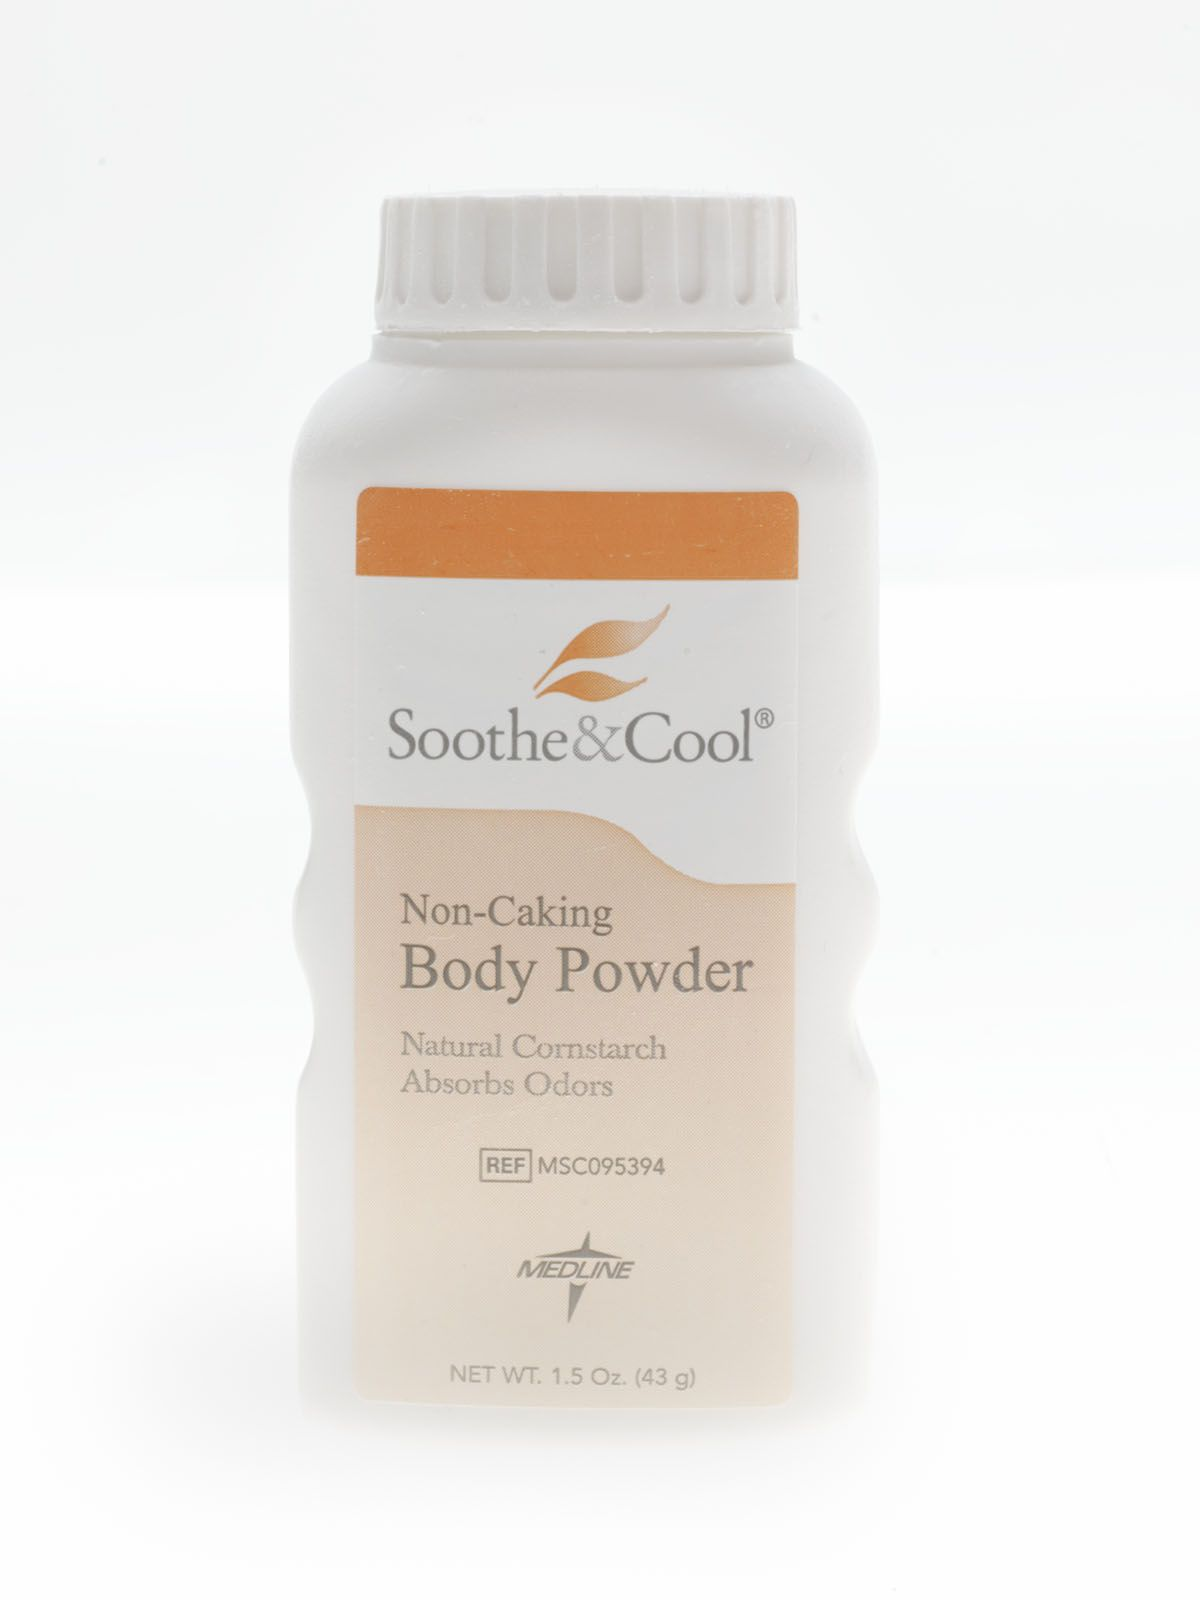 Medline Soothe & Cool Cornstarch Body Powder - Soothe&Cool, 1.5 Oz, Box of 48 - Model MSC095394